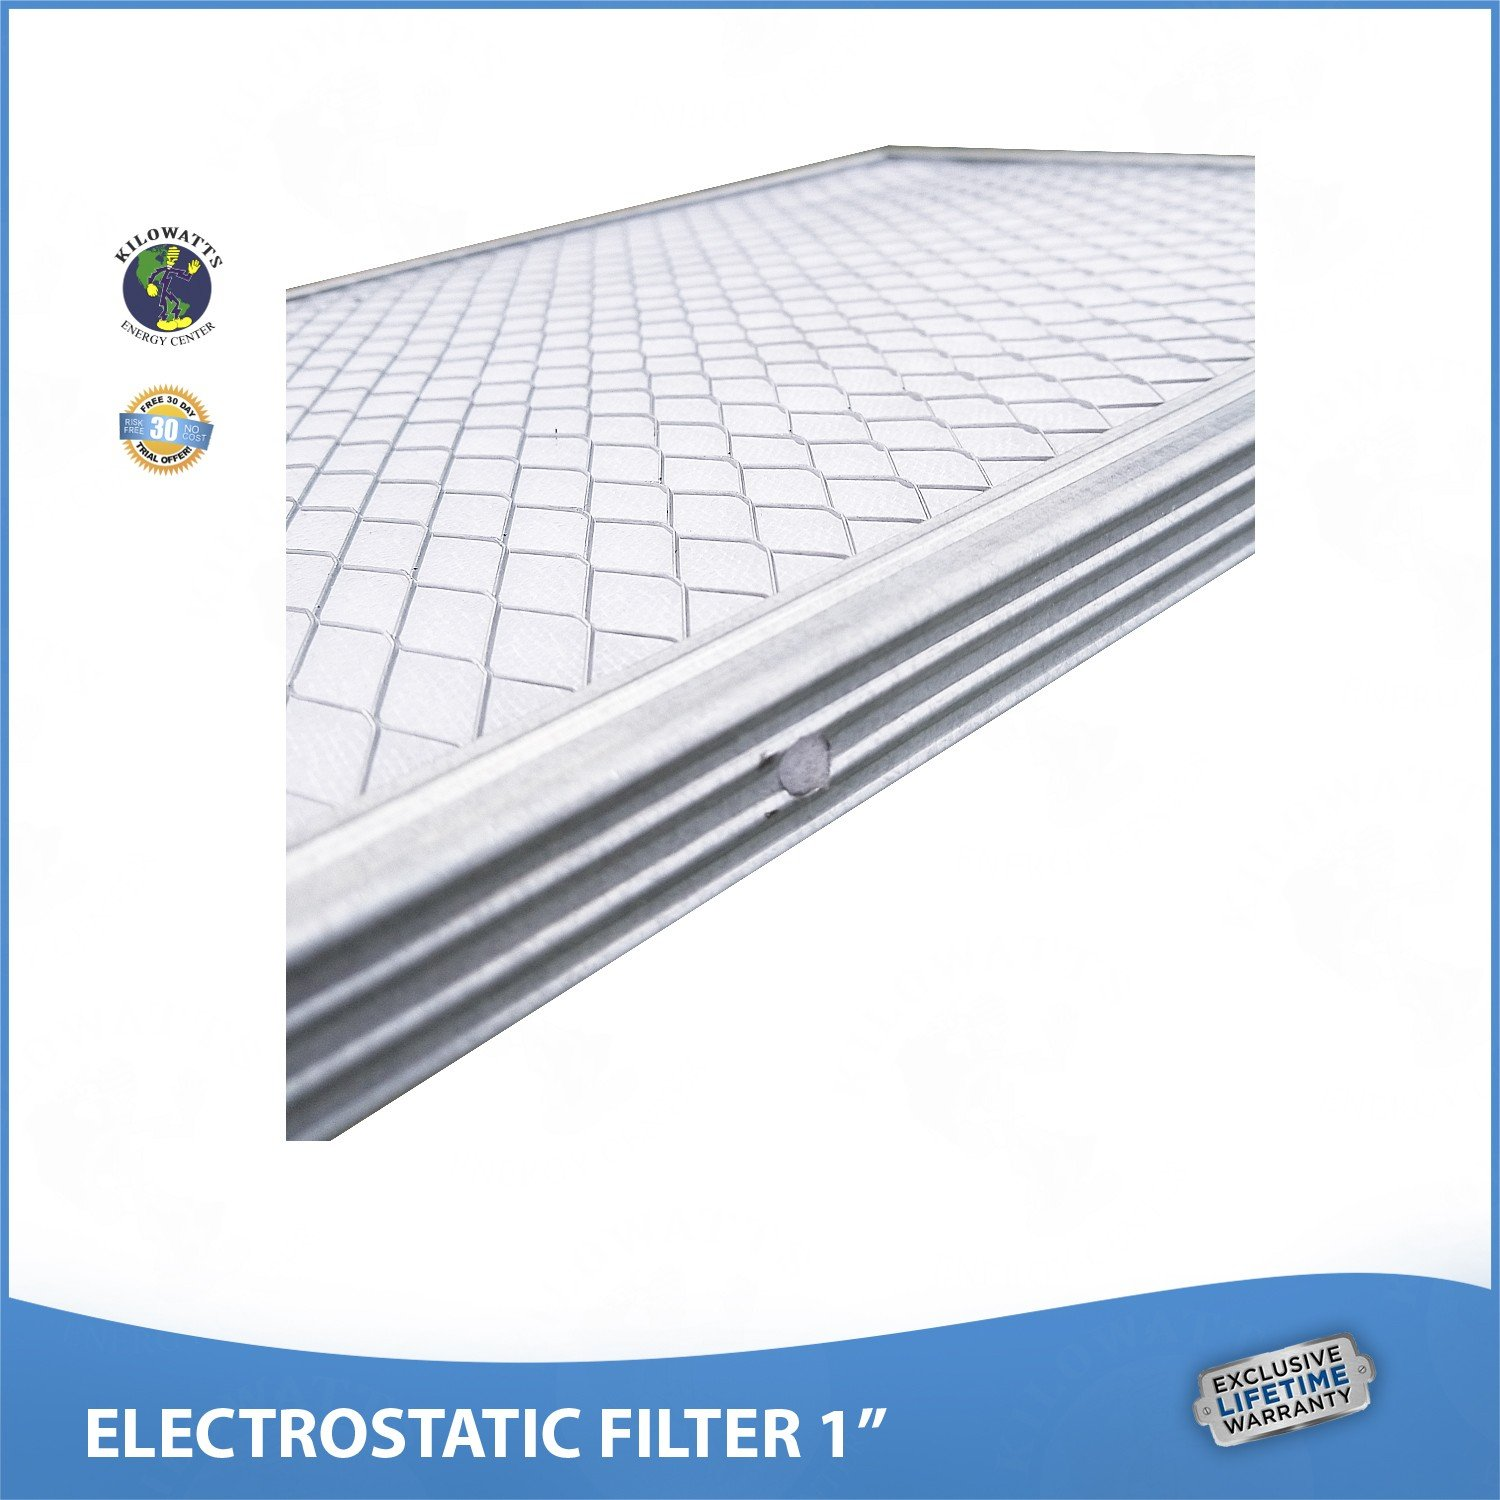 20x25x1 Lifetime Air Filter - Electrostatic Washable Permanent A/C Furnace Air Filter. by Kilowatts Energy Center (Image #3)